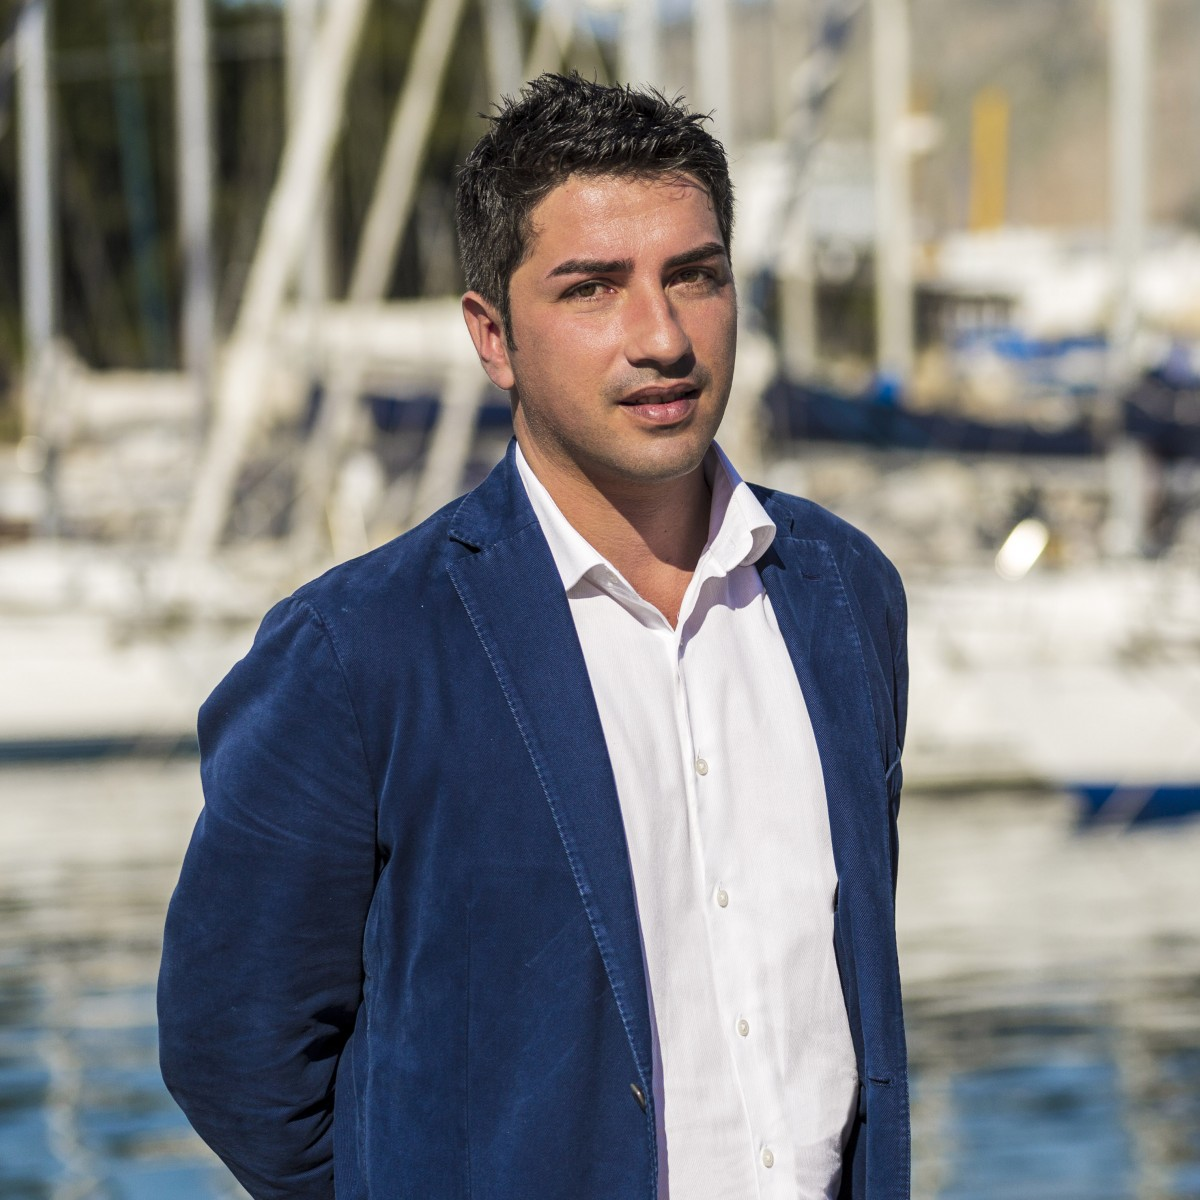 Giovanni Casteltermini - Owner Account Manager